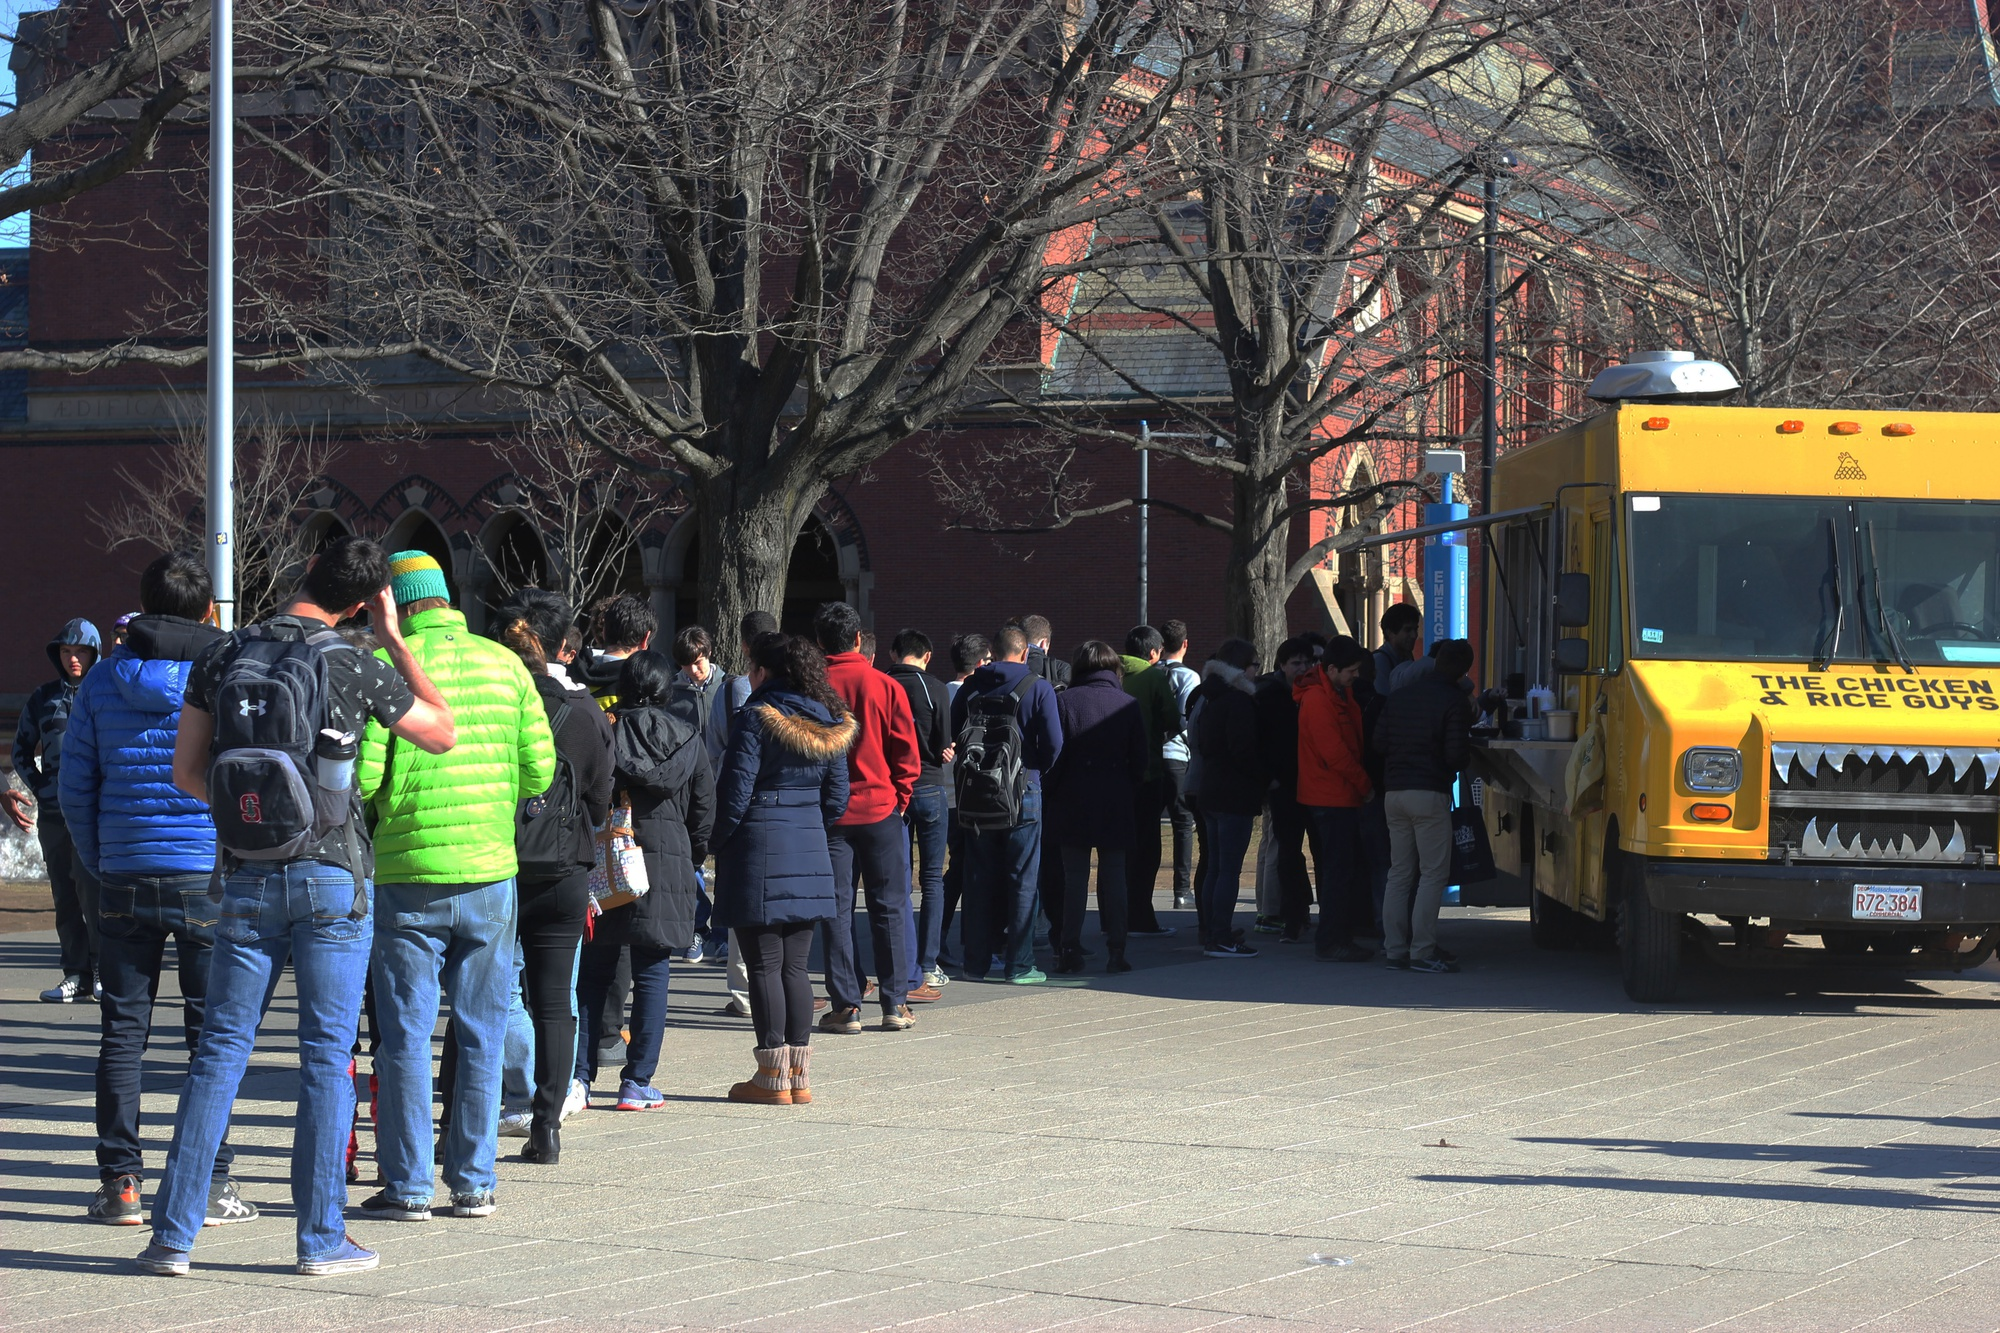 A line forms outside of the Chicken and Rice Guys food truck at the Science Center plaza. Northeastern students recently triumphed over Harvard in a Facebook competition that offered free snack size meals for a day to the winning study body.